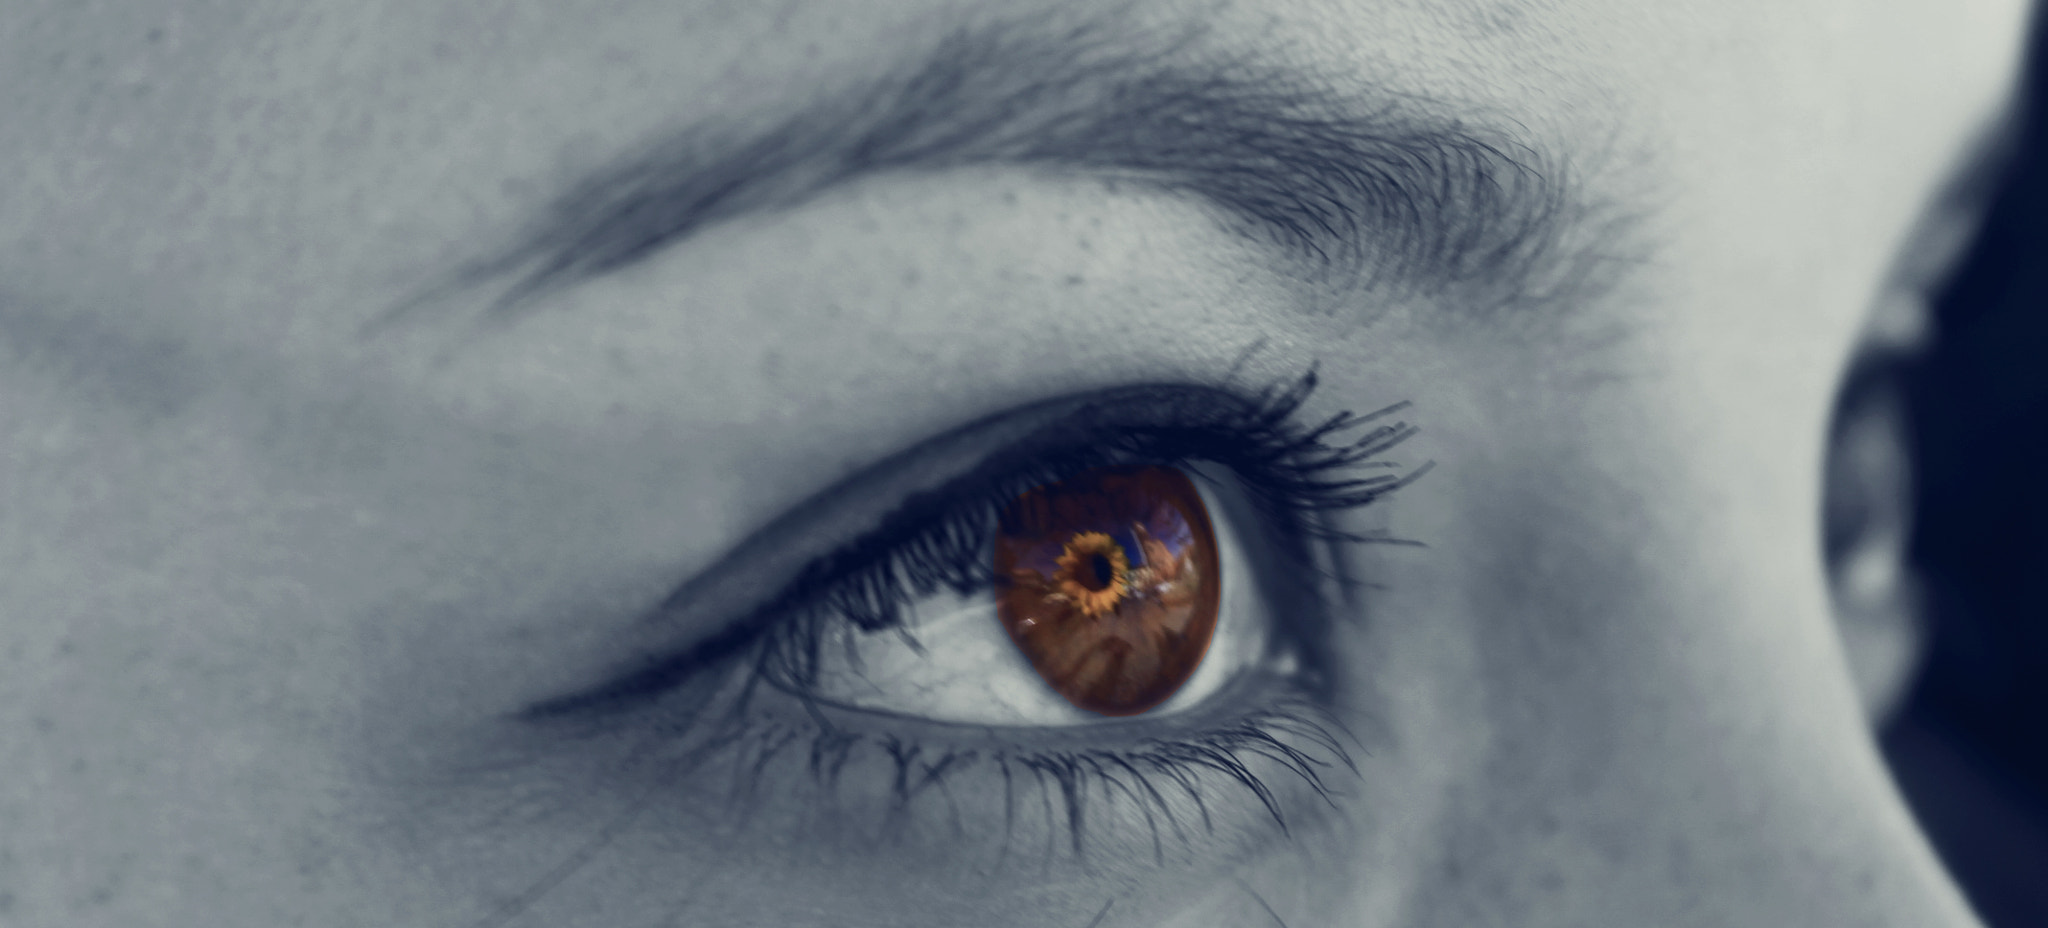 Photograph Anny's eye. by Tim Torner on 500px